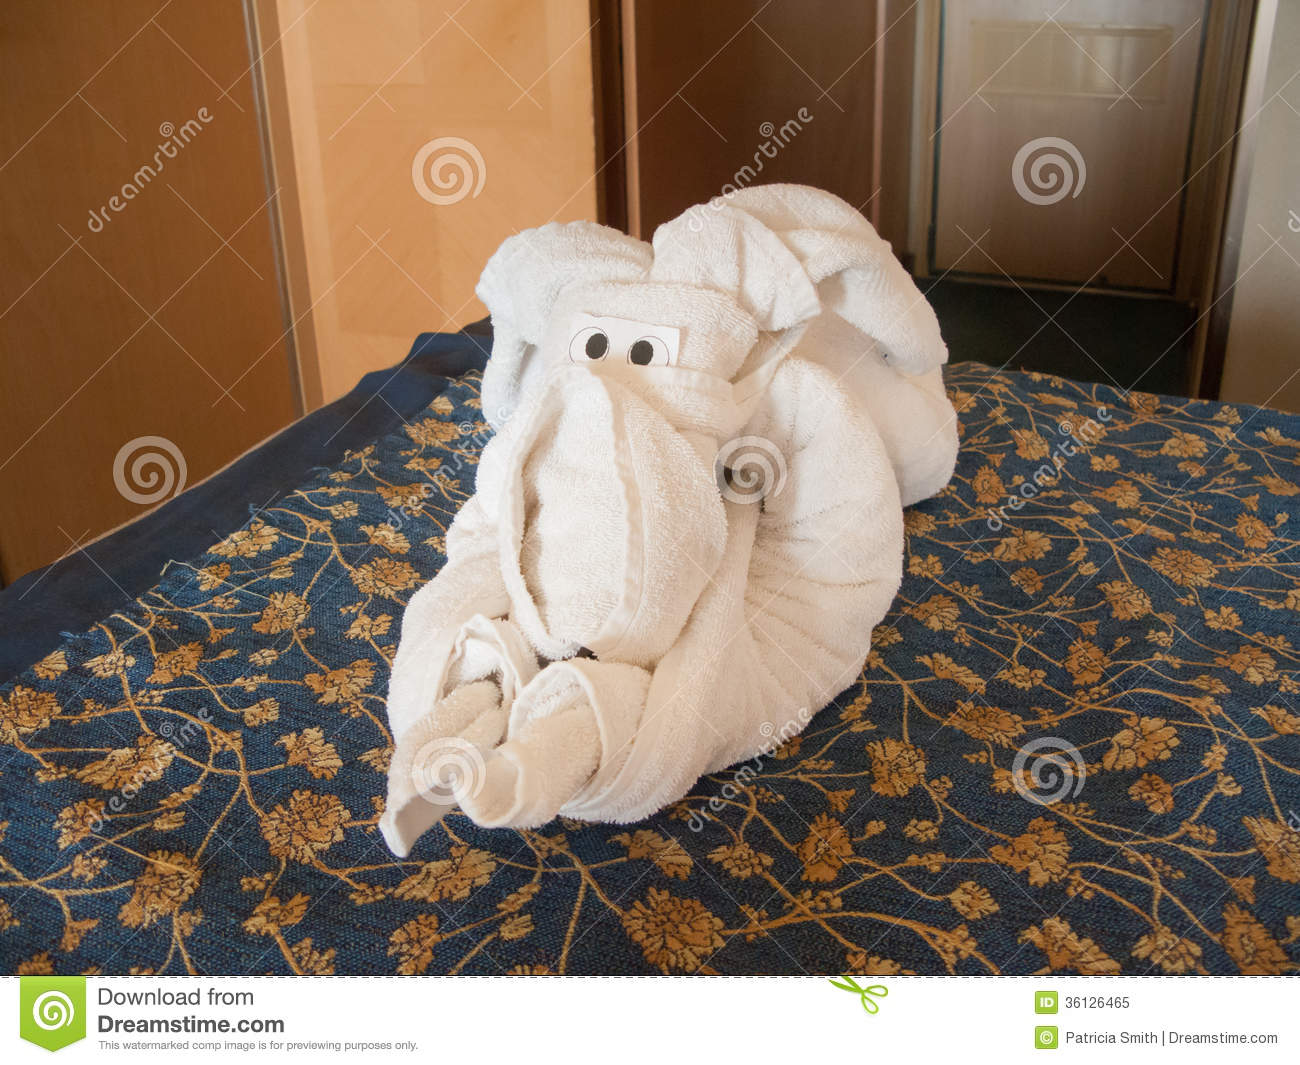 Towel Elephant Origami Stock Image Image Of Accessories 36126465